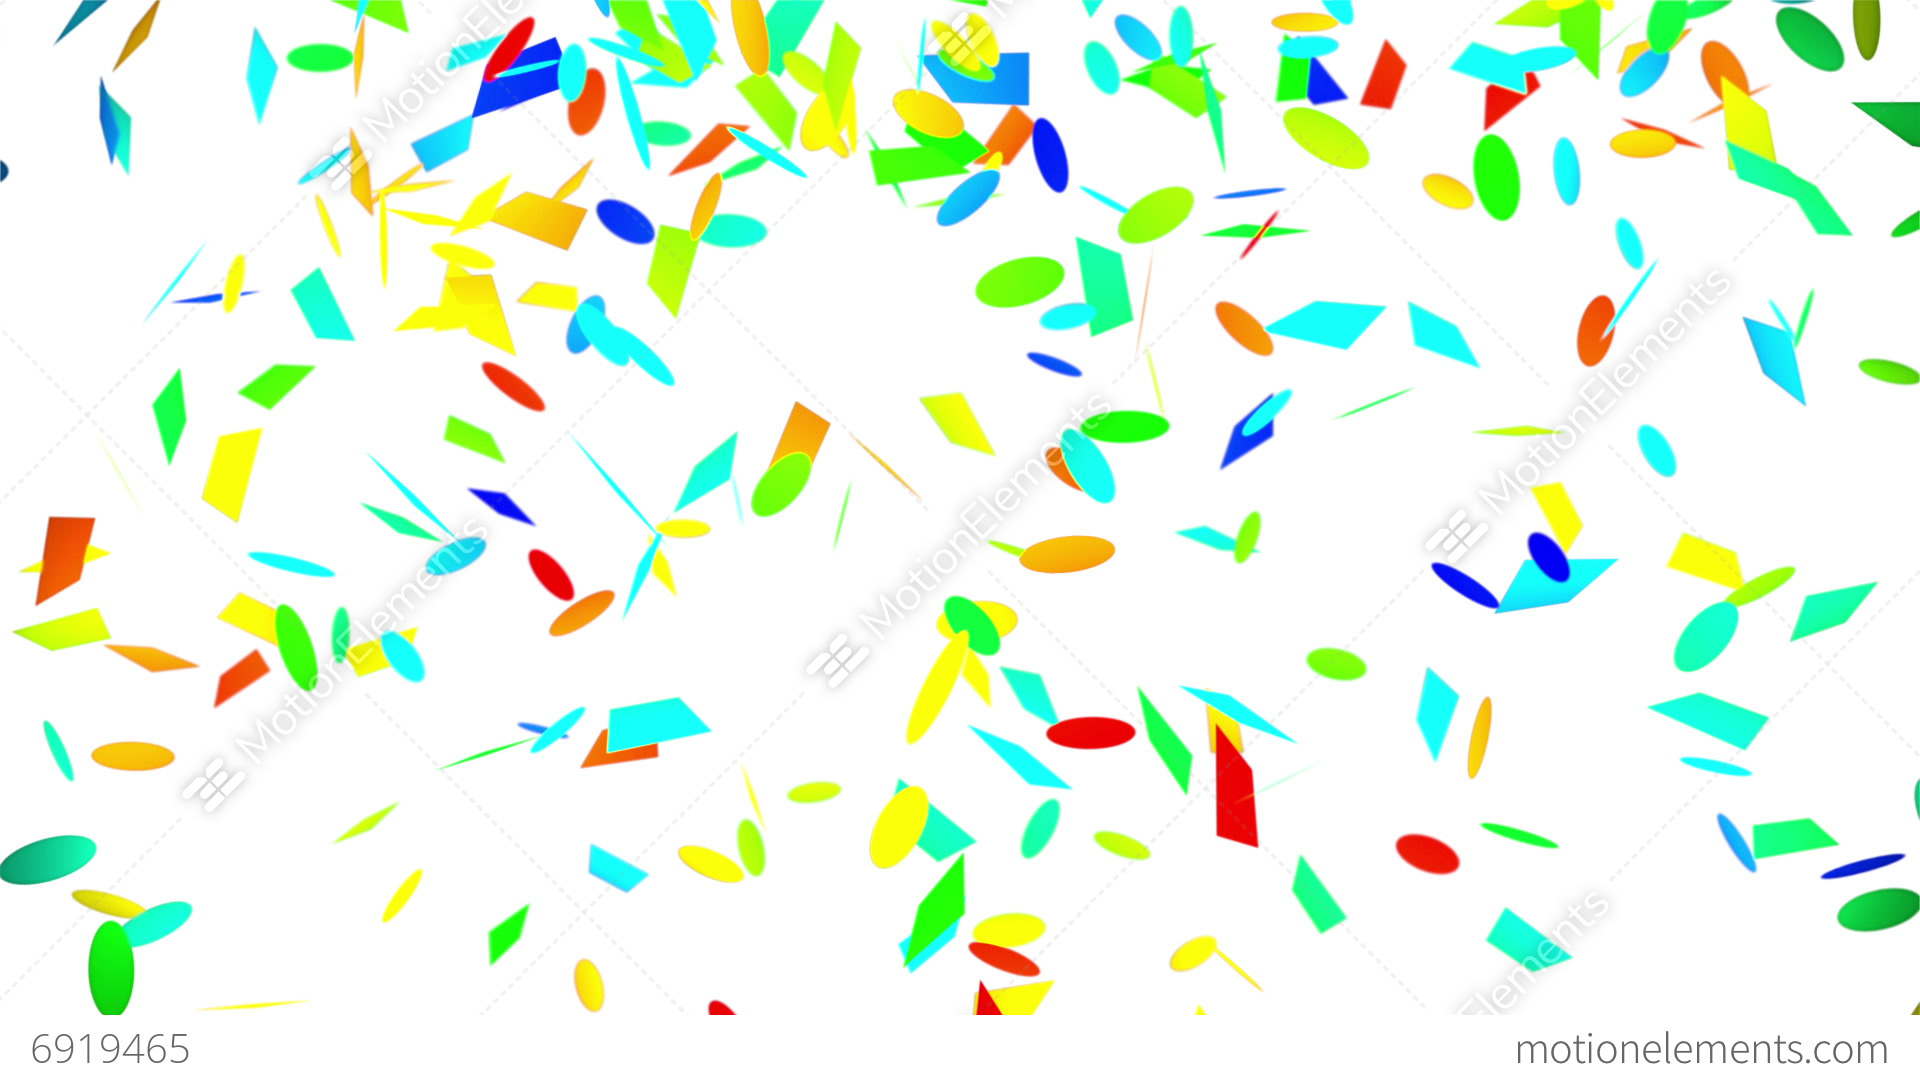 Animated Confetti Falling - green screen effects GIFs Search | Find